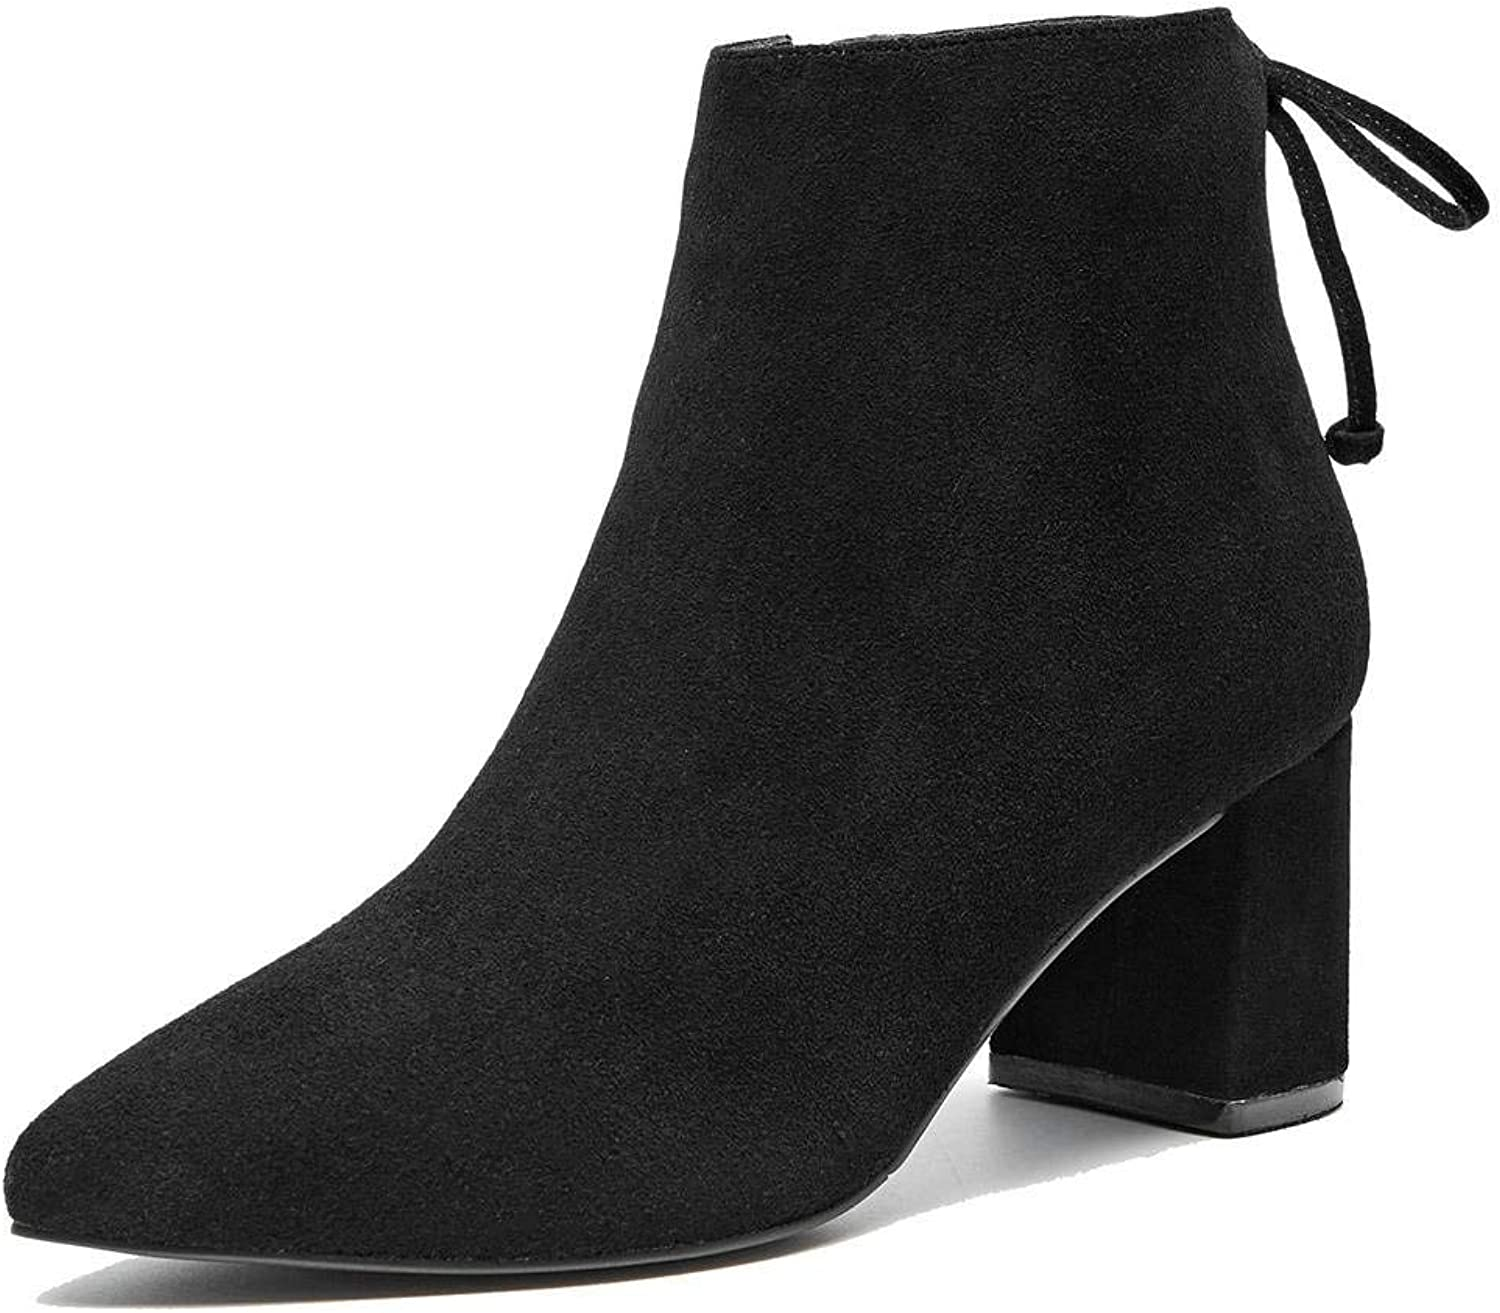 U-lite Womens Suede Pointed Toe Chukka Ankle Boots, Block Heel Autumn Winter shoes Bowknot Back